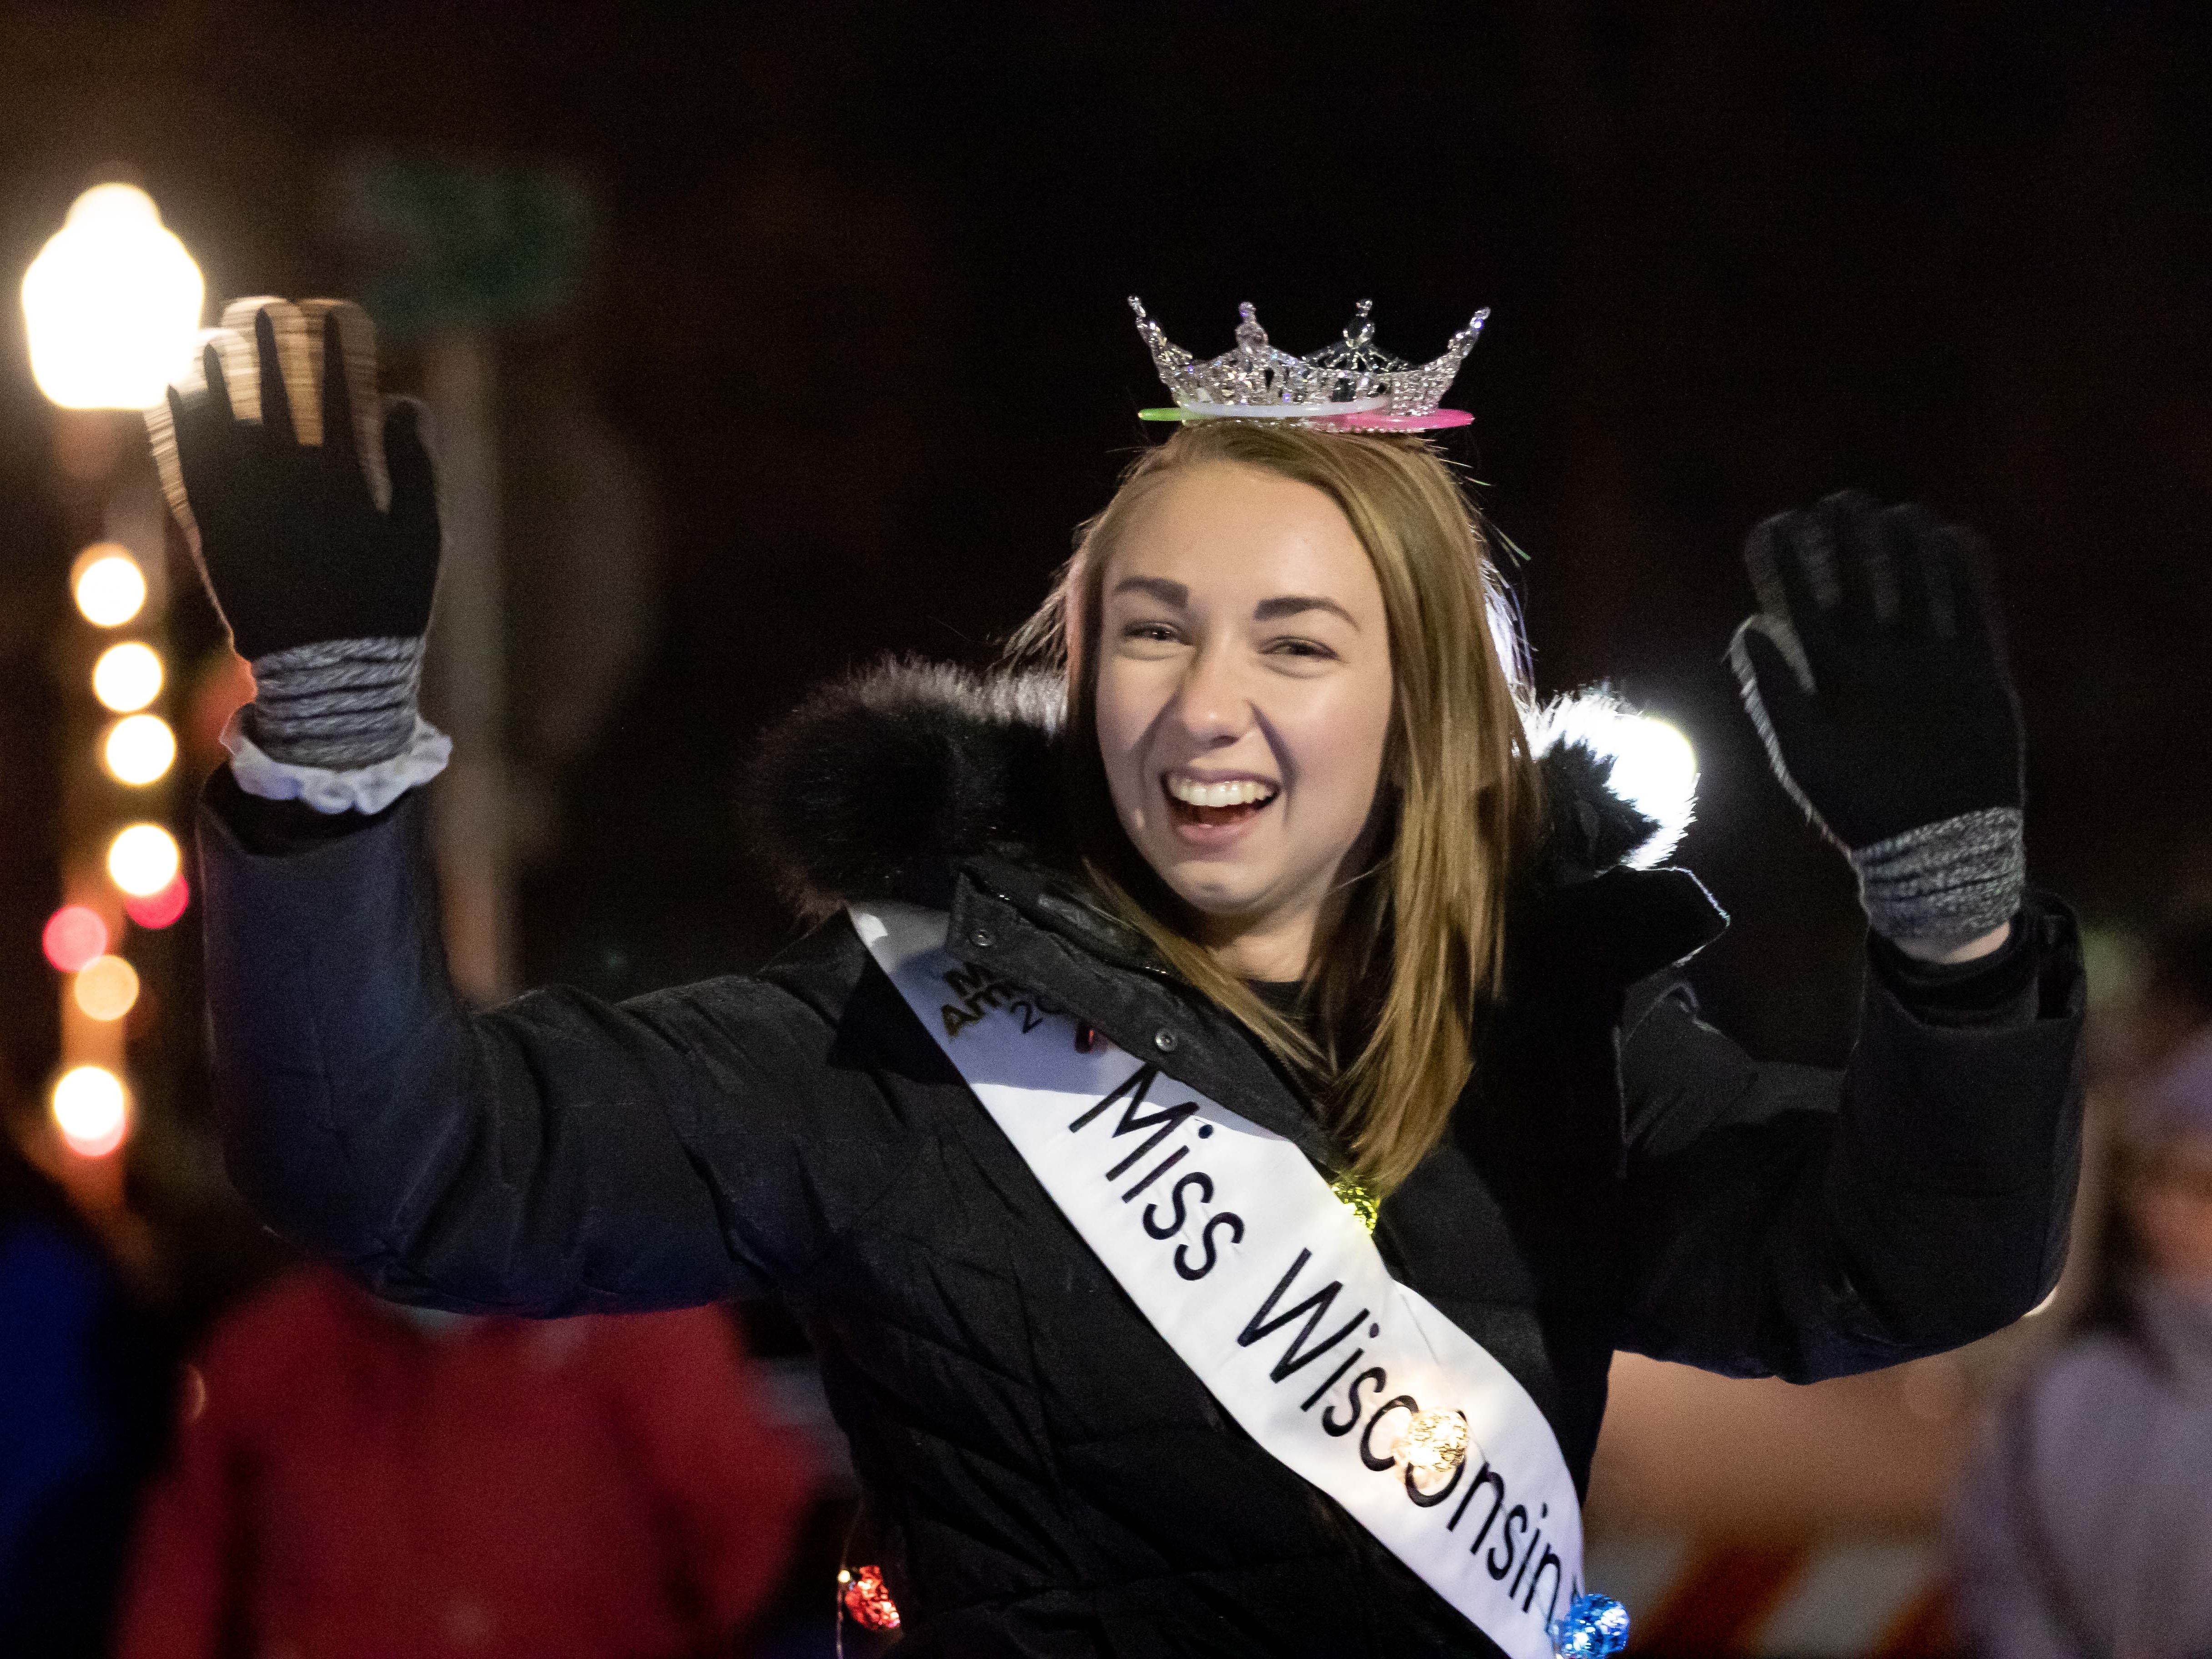 Miss Wisconsin Rapids Area 2019 Danielle Moon waves to the crowd gathered for the Rekindle the Spirit holiday parade on Wednesday, Nov. 21, 2018, in downtown Wisconsin Rapids.